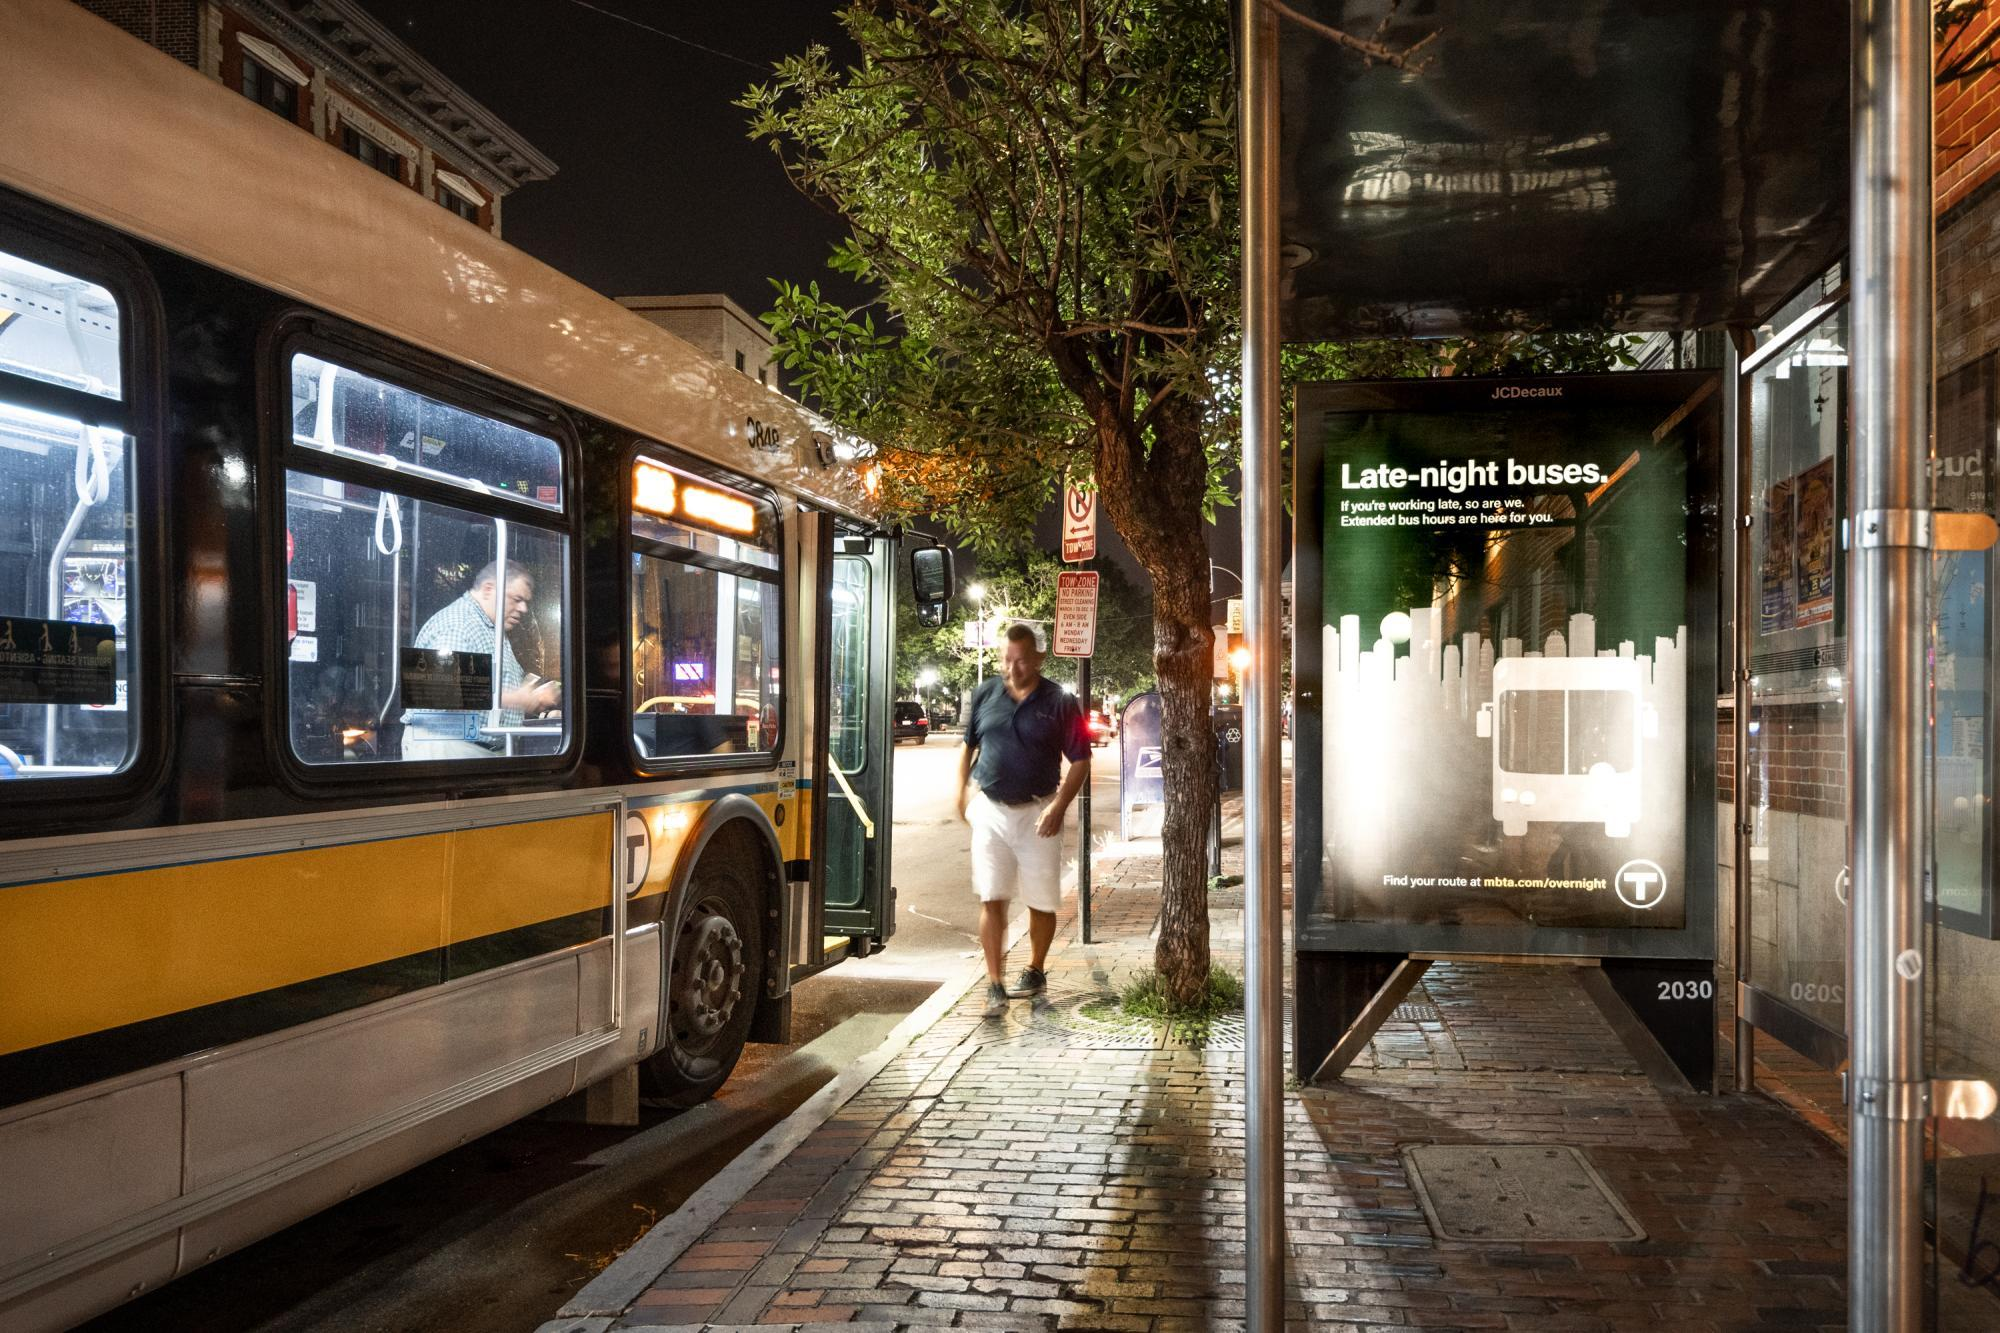 """A bus pulled up to a bus shelter late at night, with a rider walking away, and an ad for late night bus service on the shelter wall, which reads, """"Late-night buses. If you"""